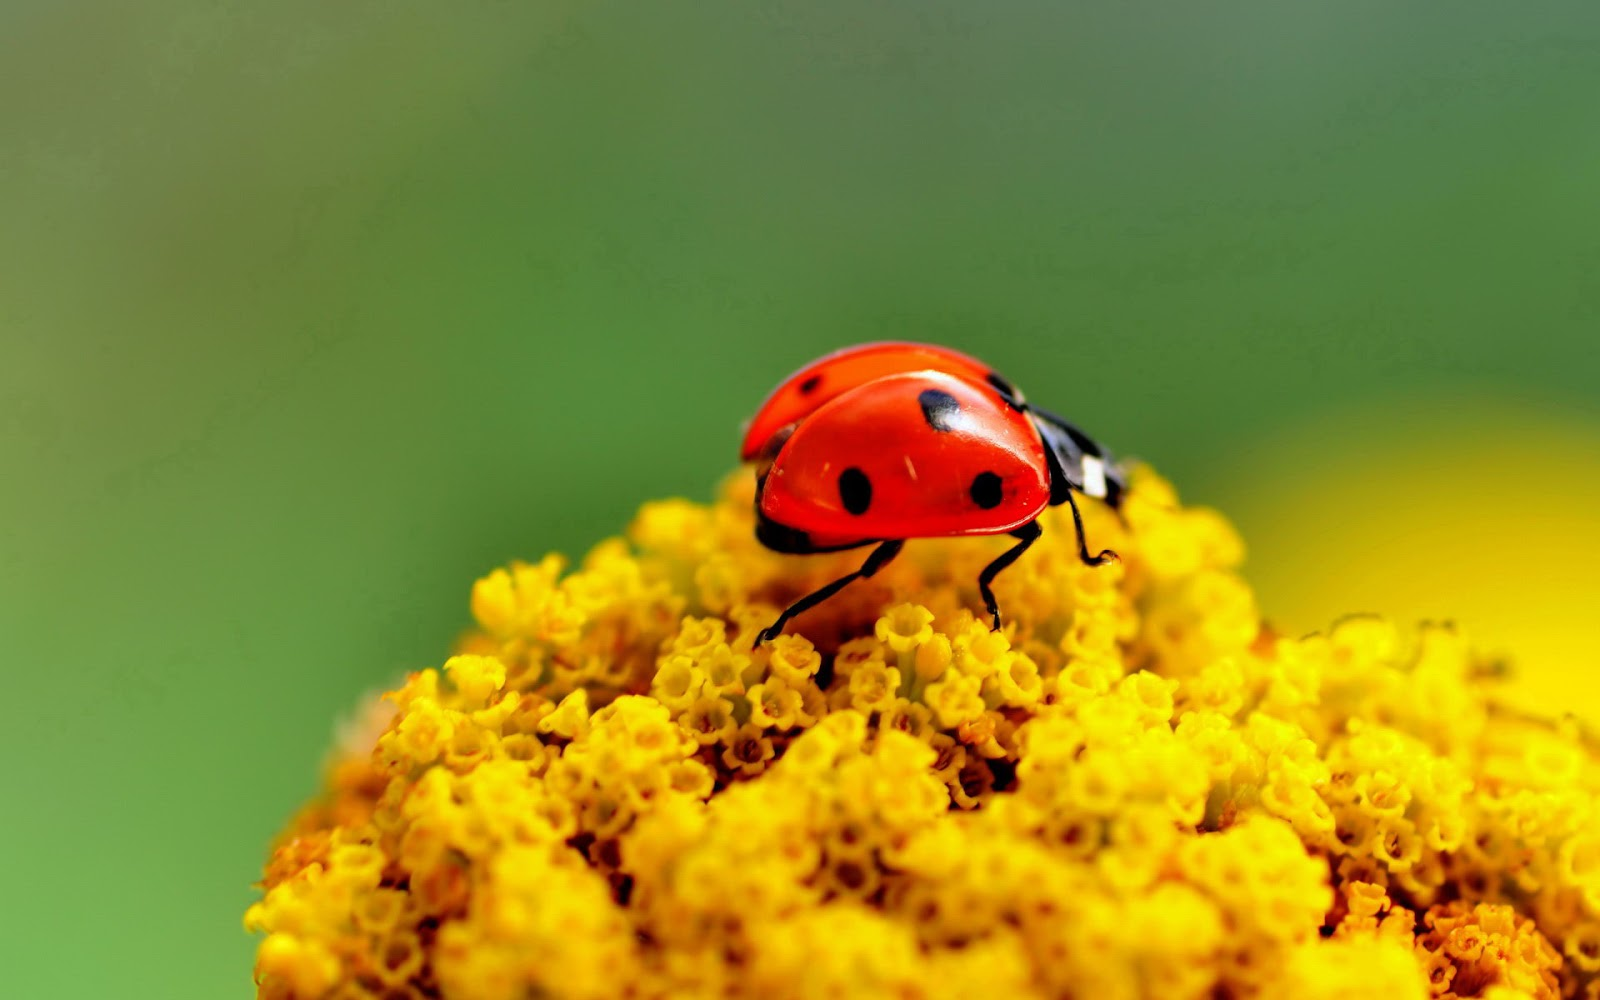 Collection of Photographs: Most Beautiful Ladybug Photography